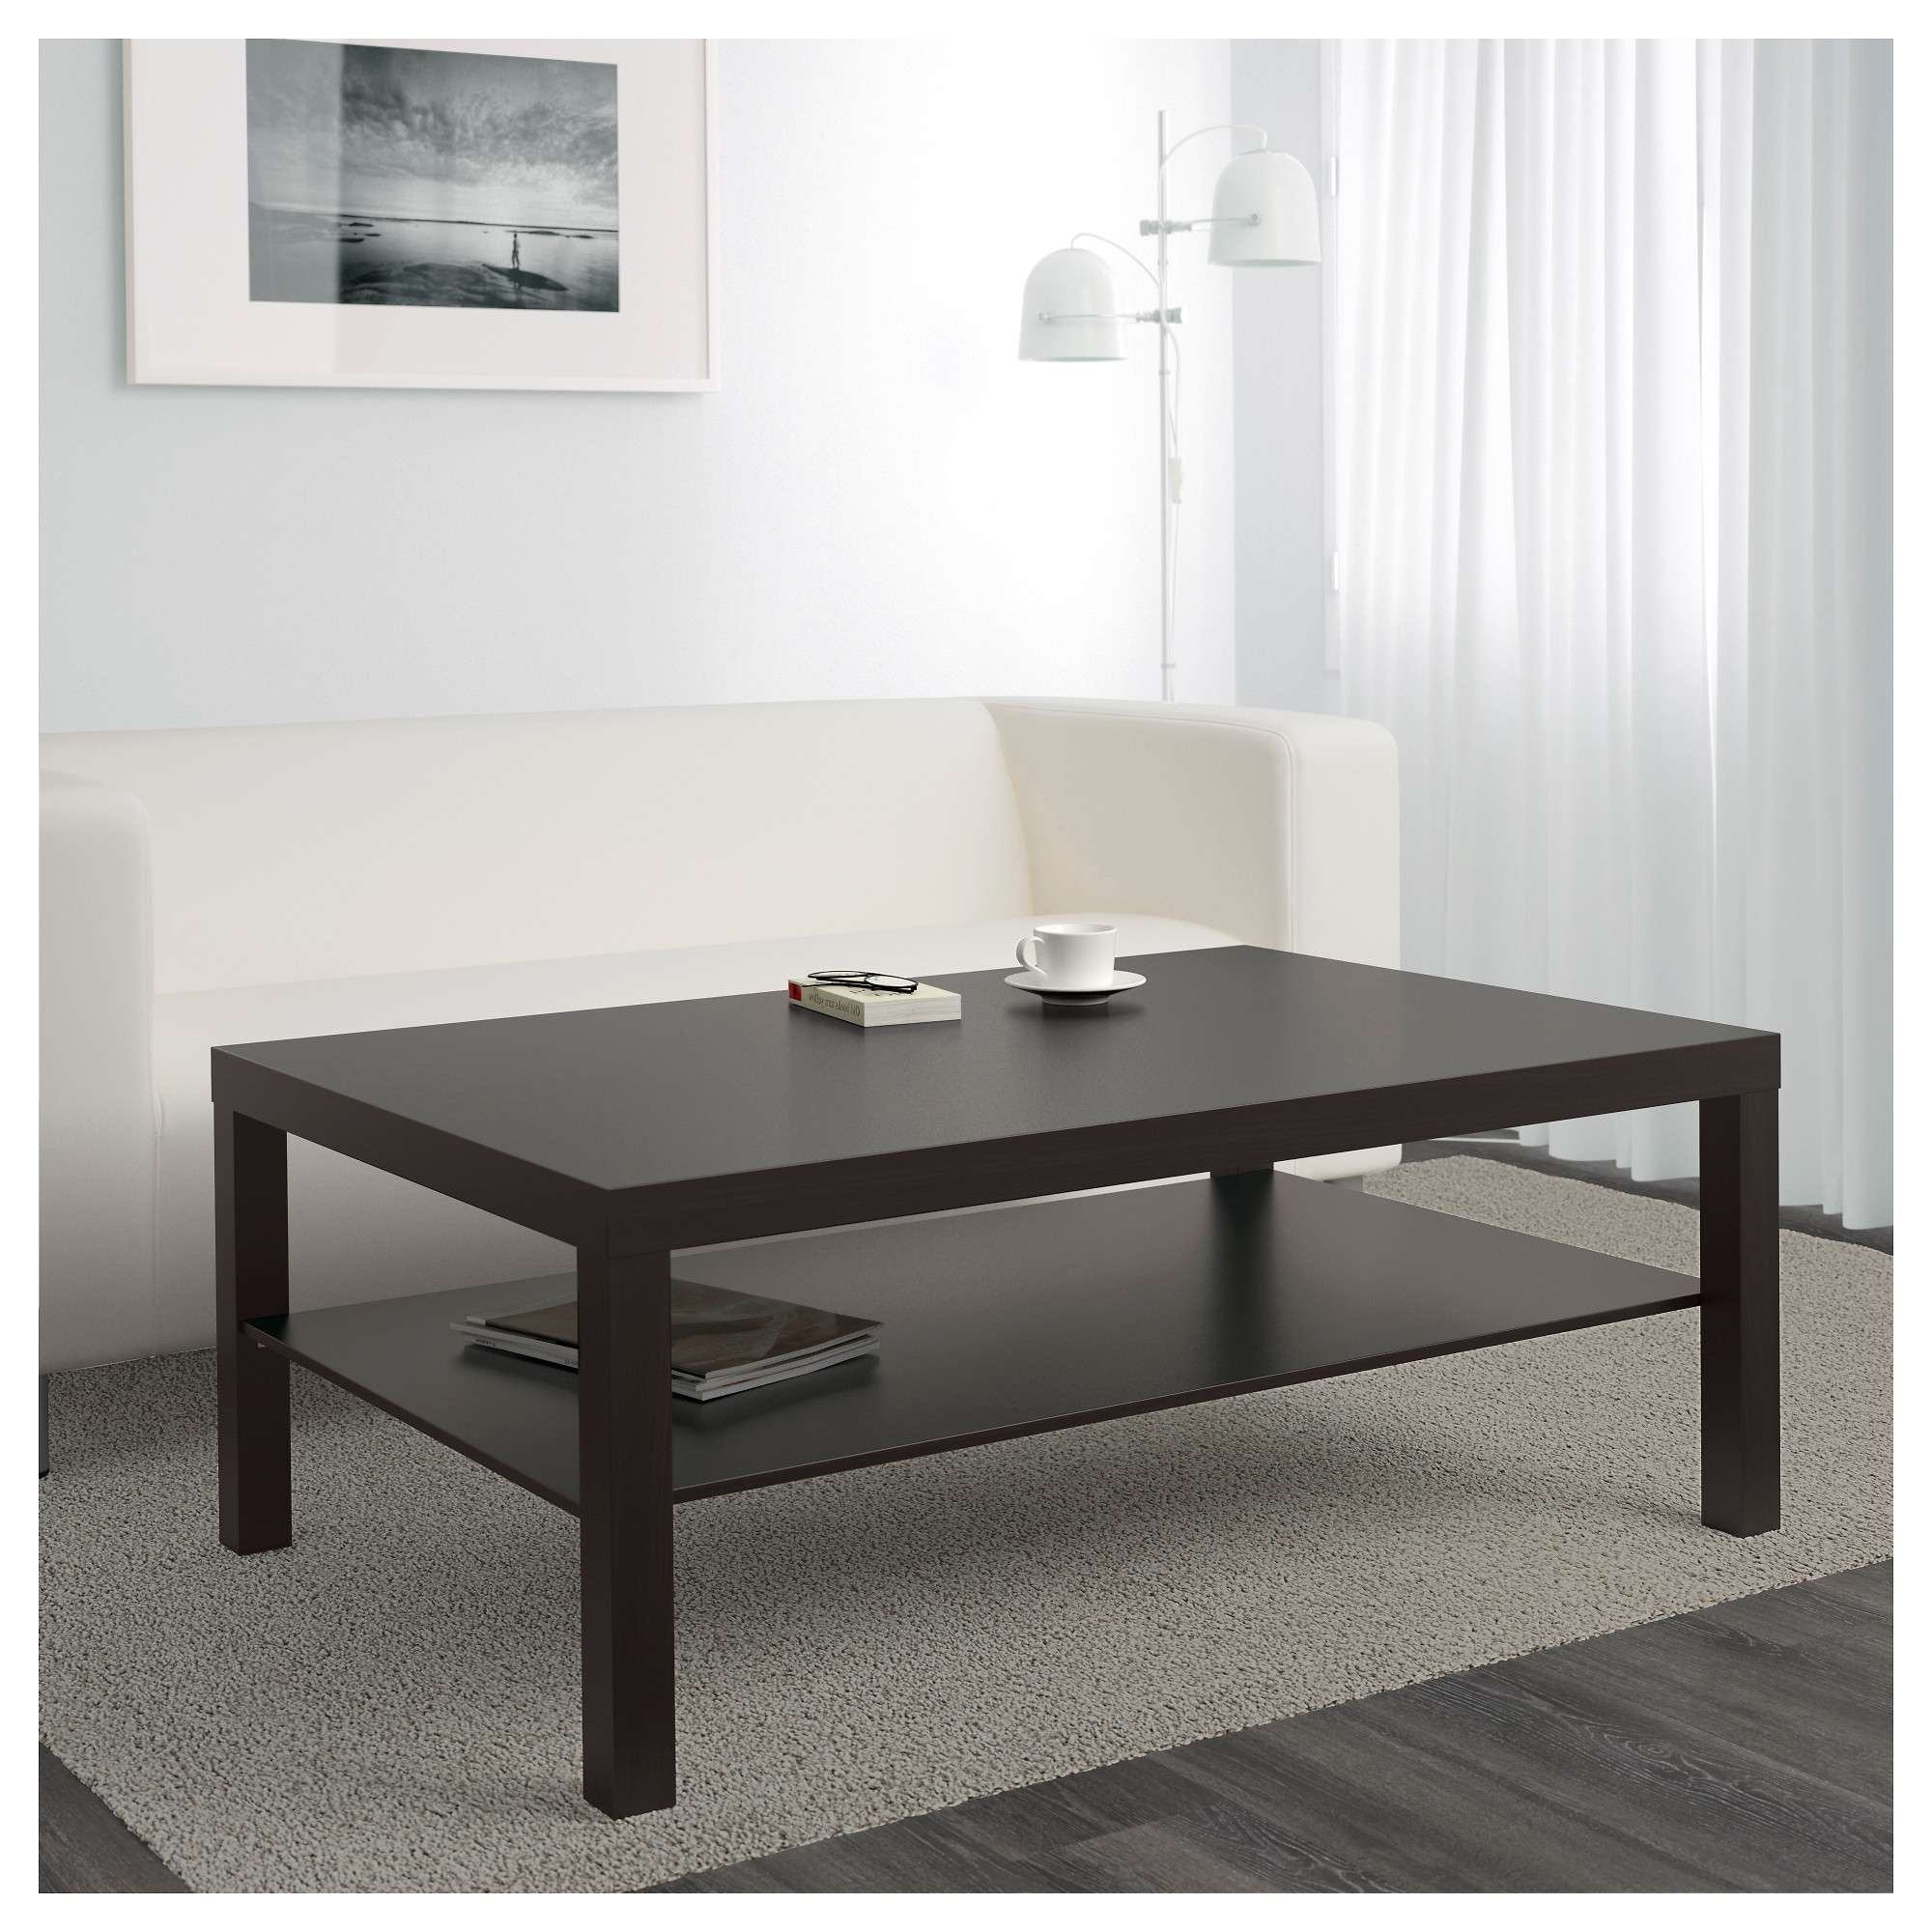 Lack Coffee Table – Black Brown – Ikea Intended For Popular Dark Brown Coffee Tables (View 13 of 20)